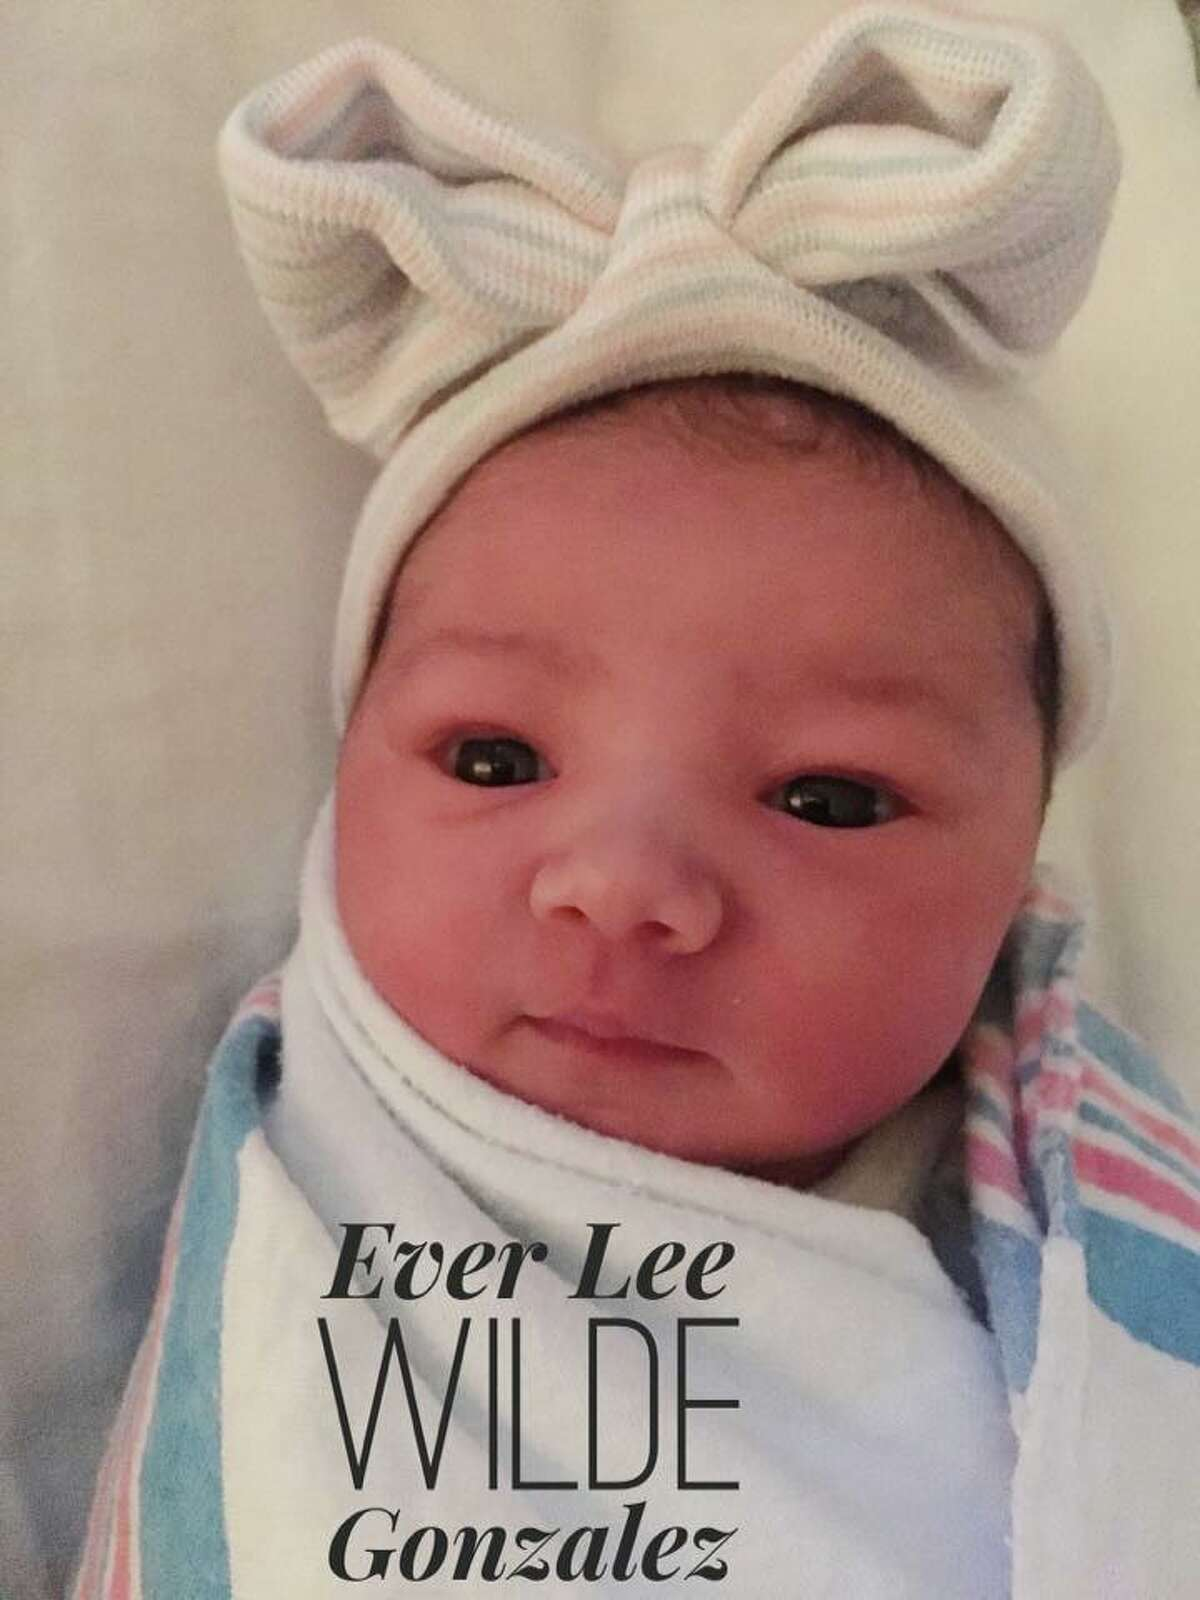 Nicholas Gonzalez and his wife, Kelsey Crane, welcomed a new baby girl on March 1: a daughter named Ever Lee Wilde Gonzalez.